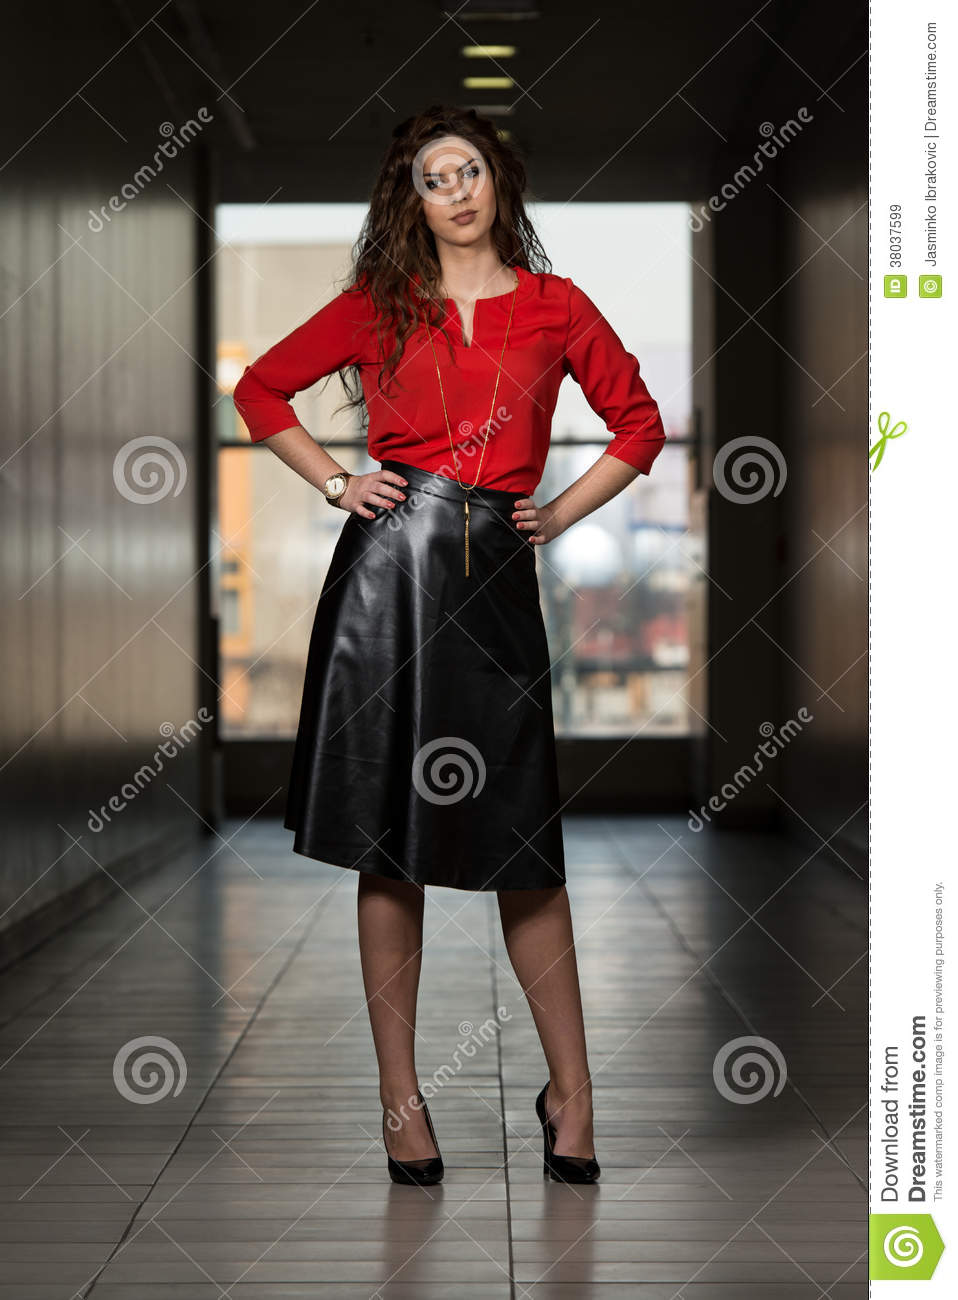 Wonderful It Often Takes Some Practice To Wear A Pencil Skirt Due To The Tight Nature That Restricts Movements This Can Make It Difficult For A Woman To Get In And Out Of  And Gold Or Silver Jewelry To Complete The Look Leather Skirt Now That